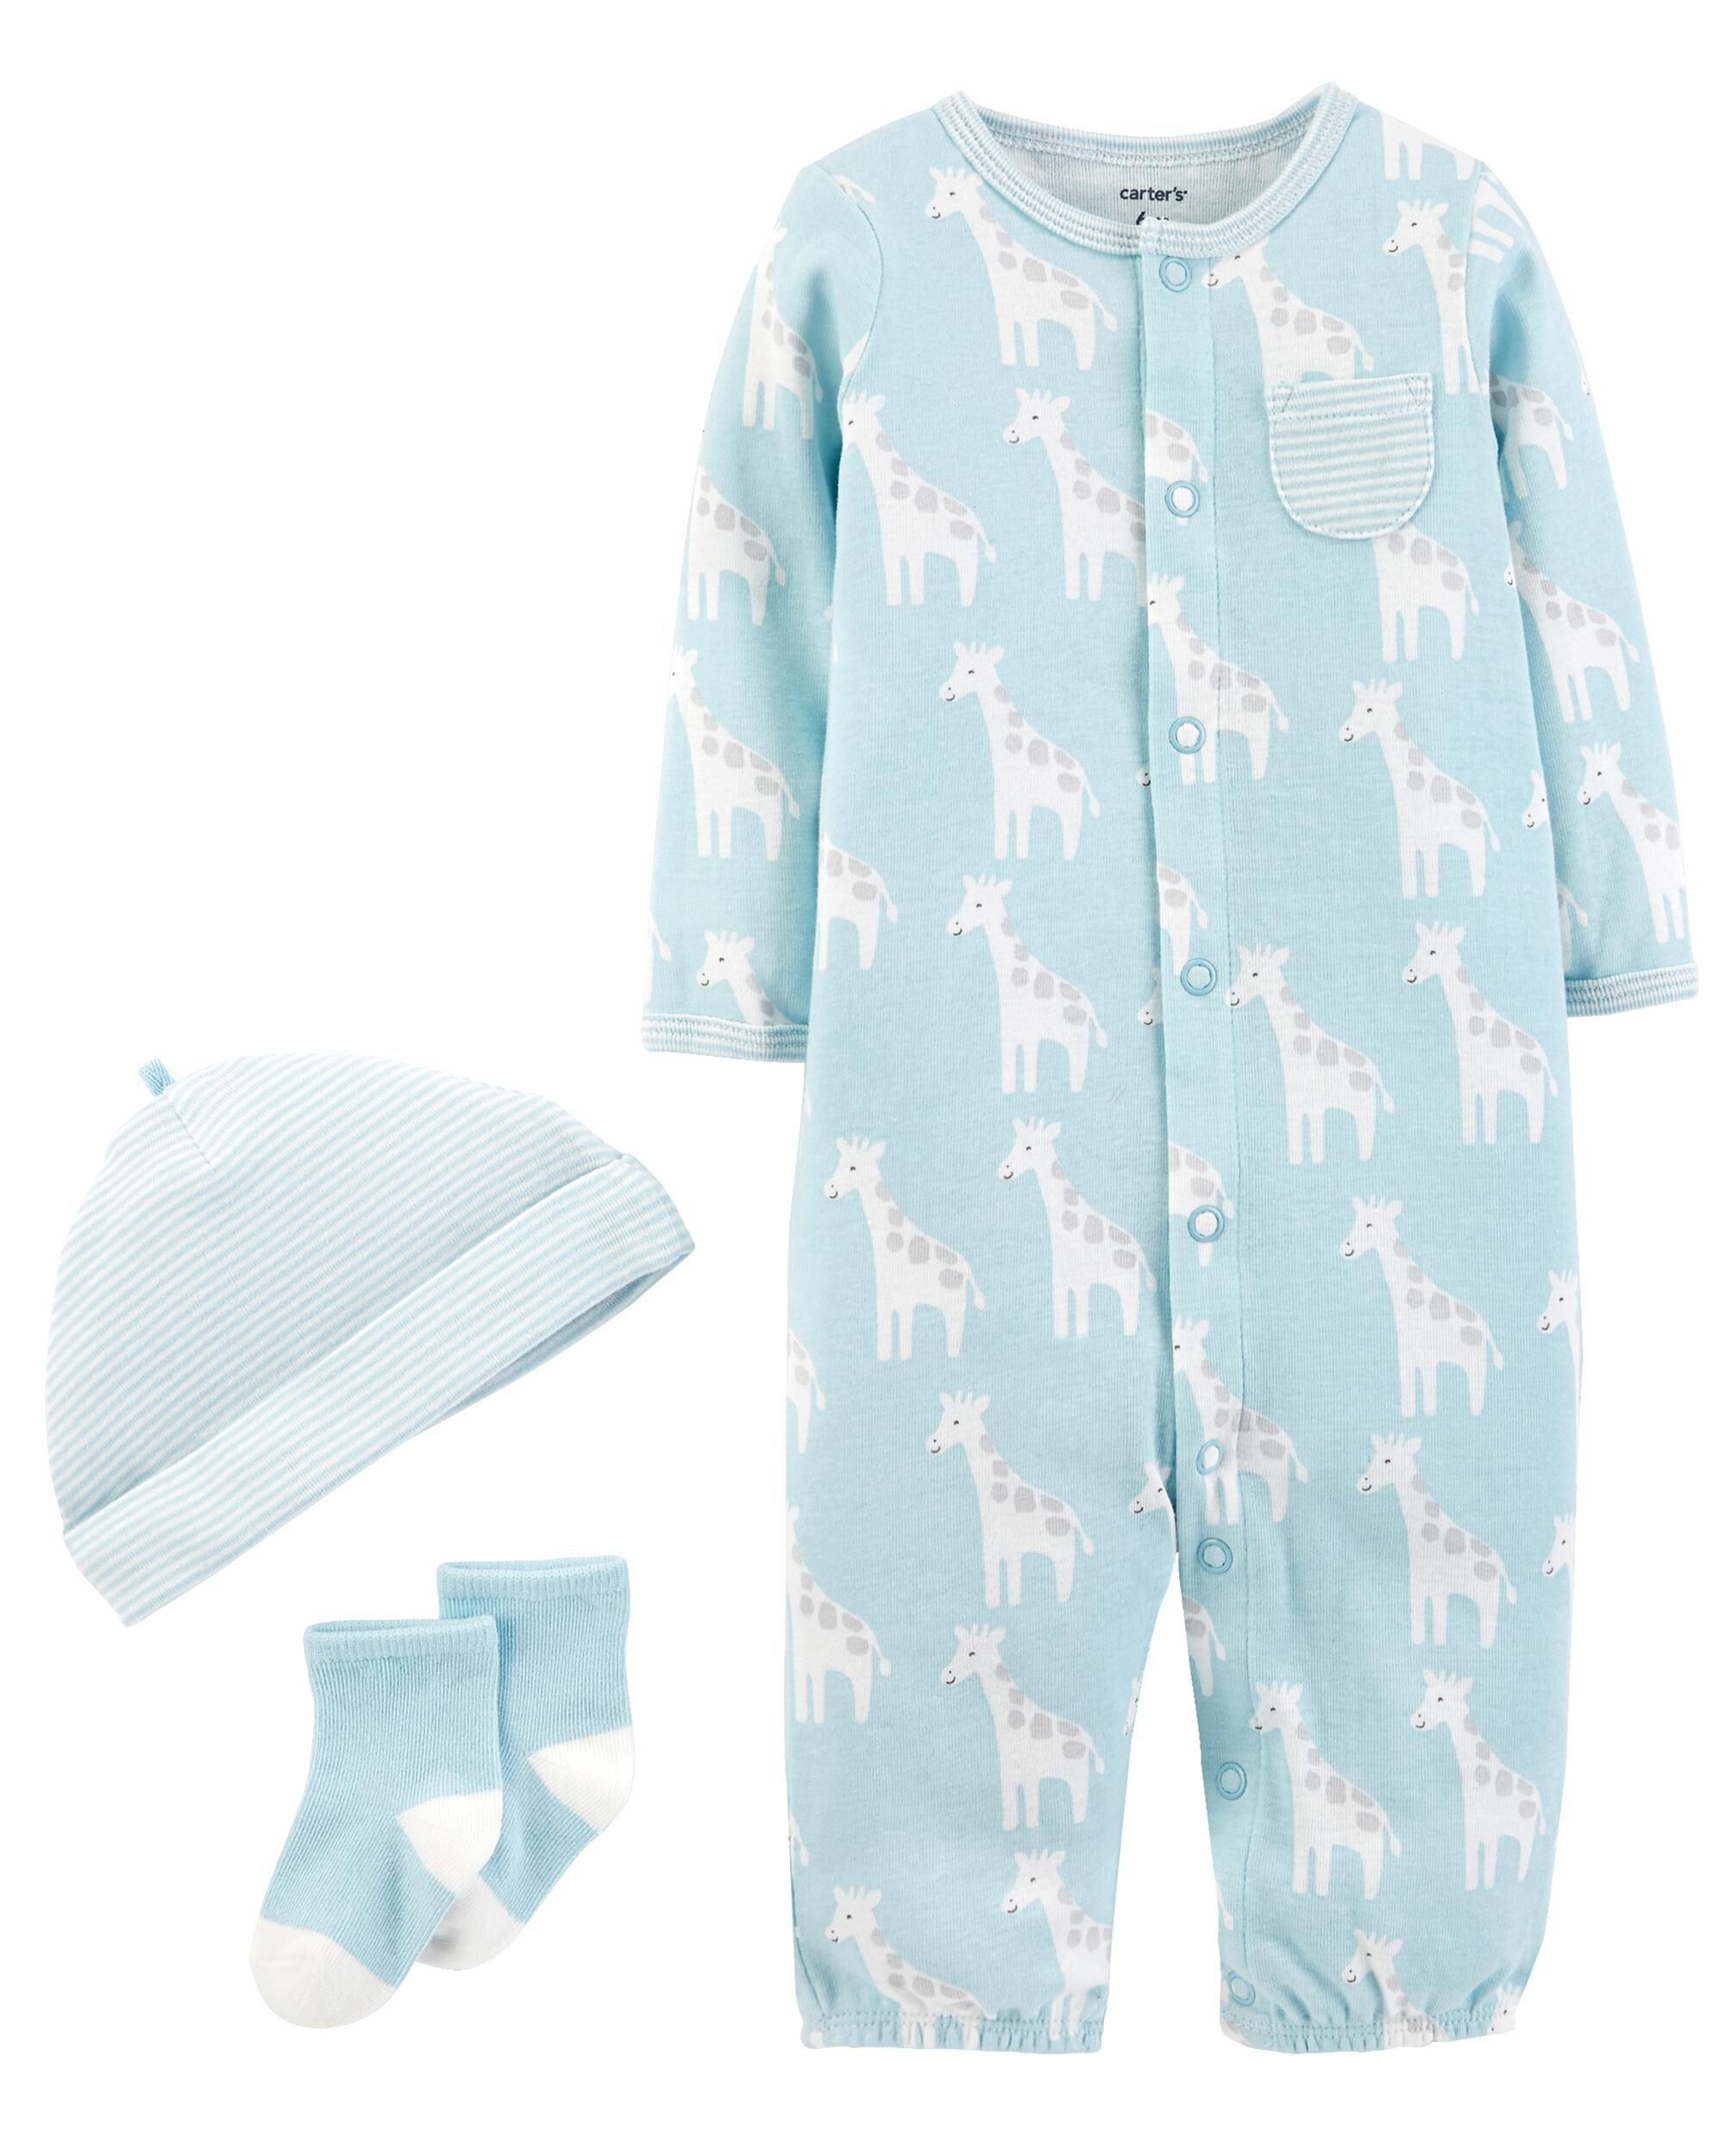 774d32fc6bb0 Unisex Clothing (Newborn-5T) Outfits & Sets NWT Carters My First  Thanksgiving Sleeper Sleep N Play ...